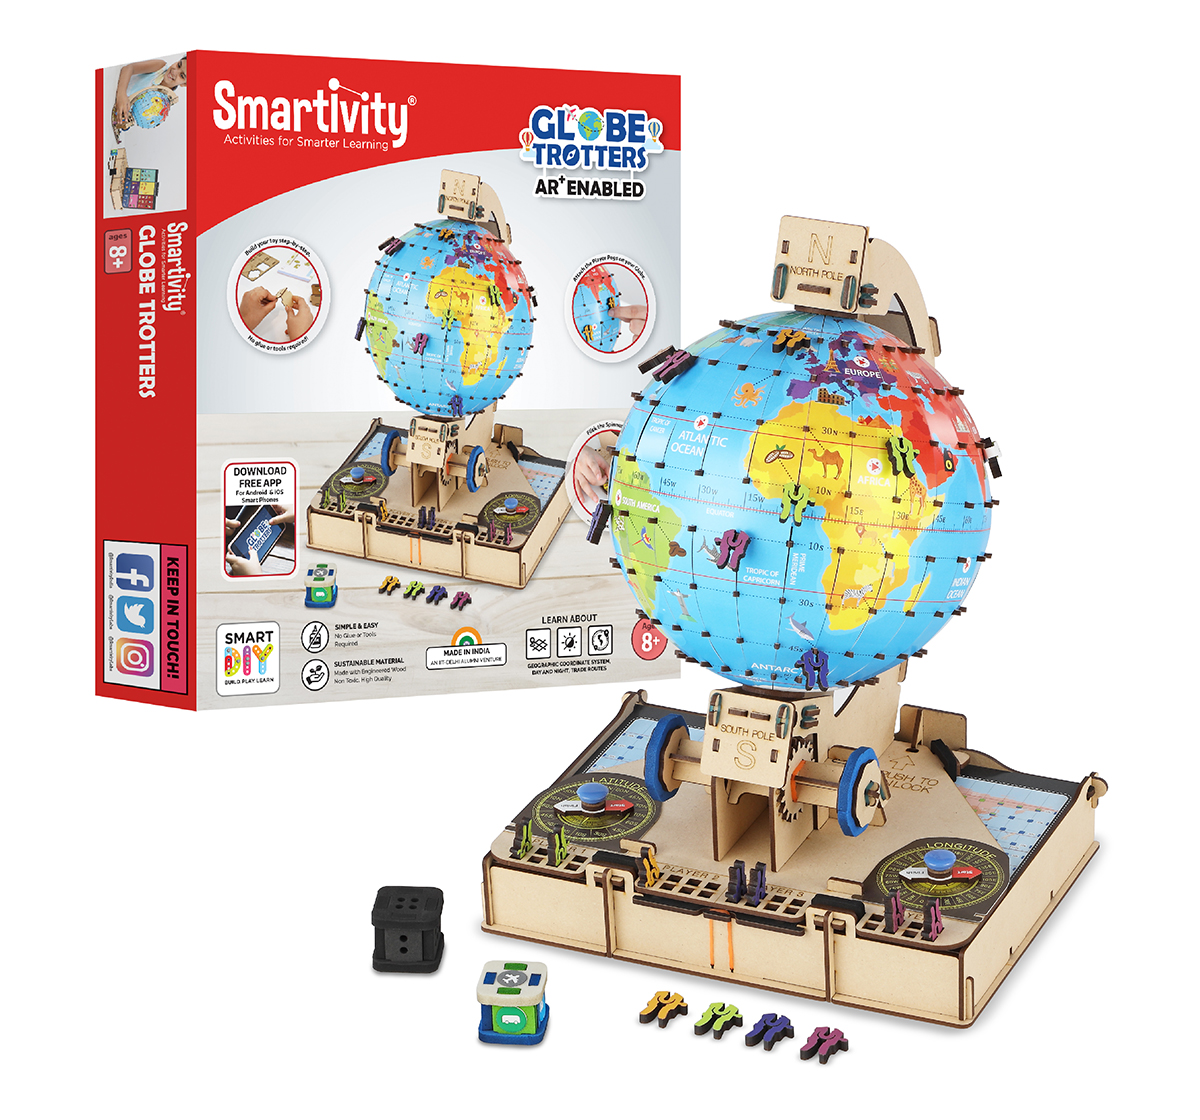 Smartivity | Smartivity Labs GLOBE Trotters Augmented Reality STEM Educational DIY Construction Toy Kit Easy Instructions Experiment Play Learn Science Free App for Kids age 7Y+